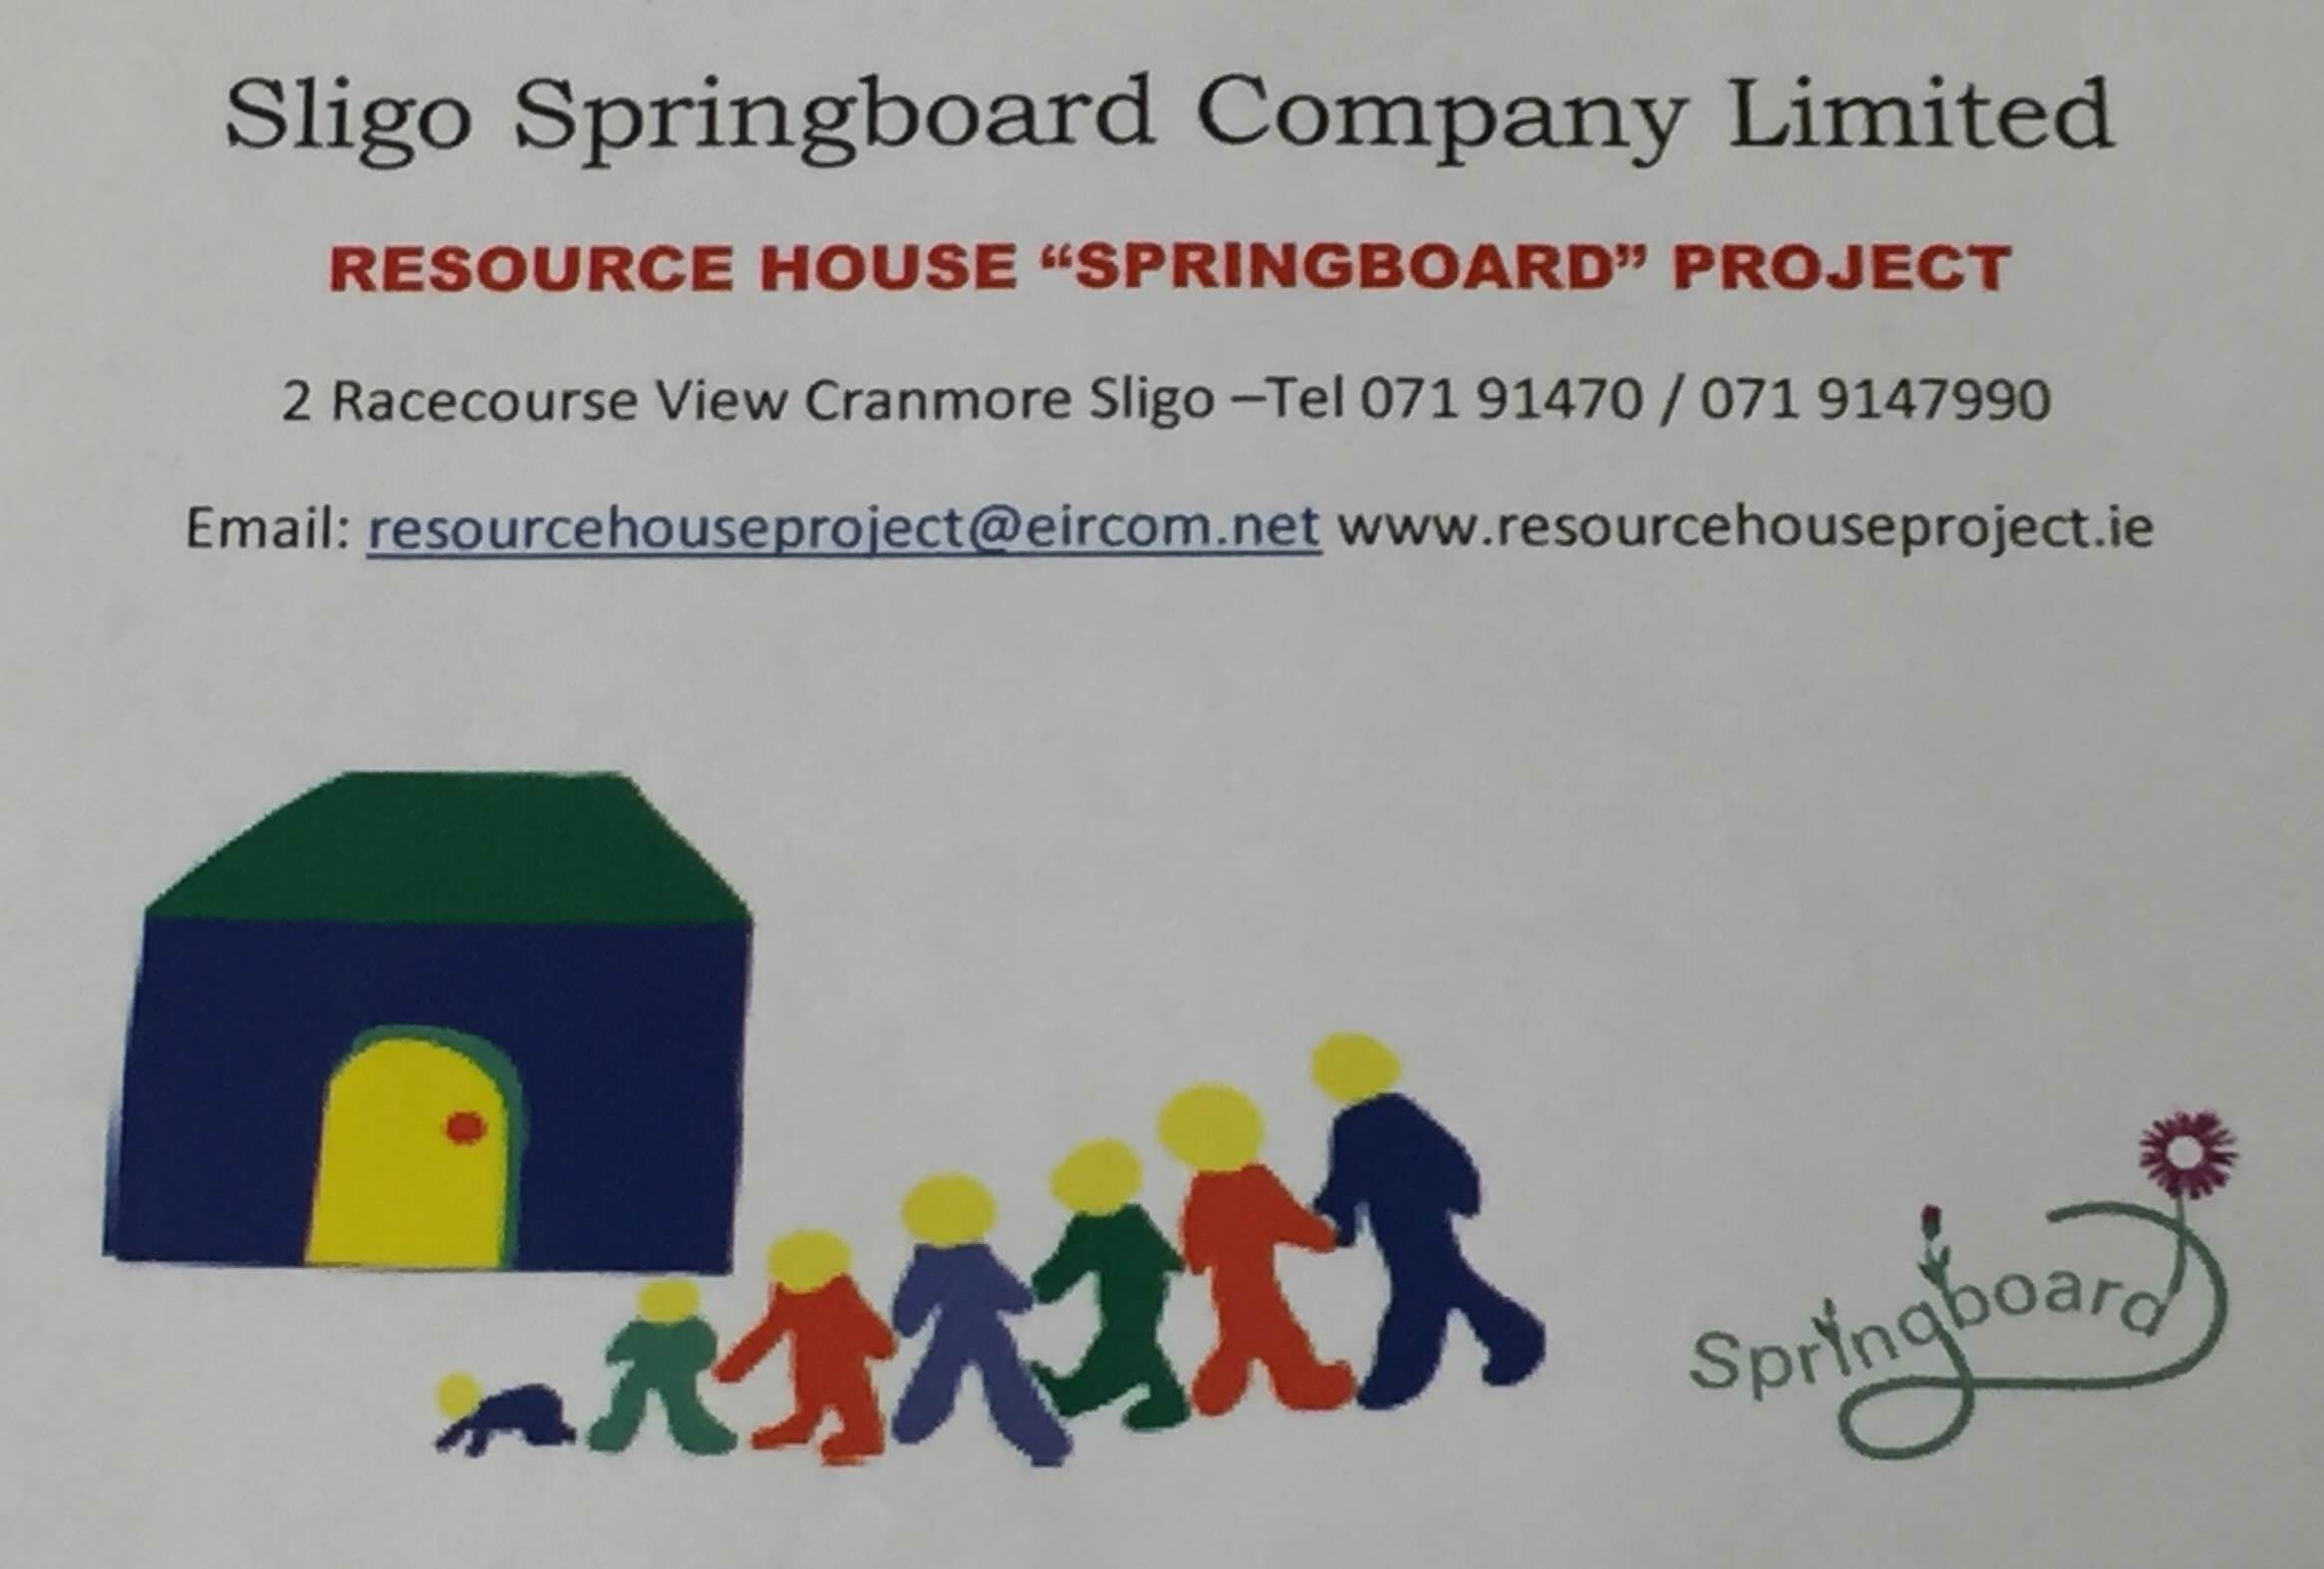 Resource House Springboard Project